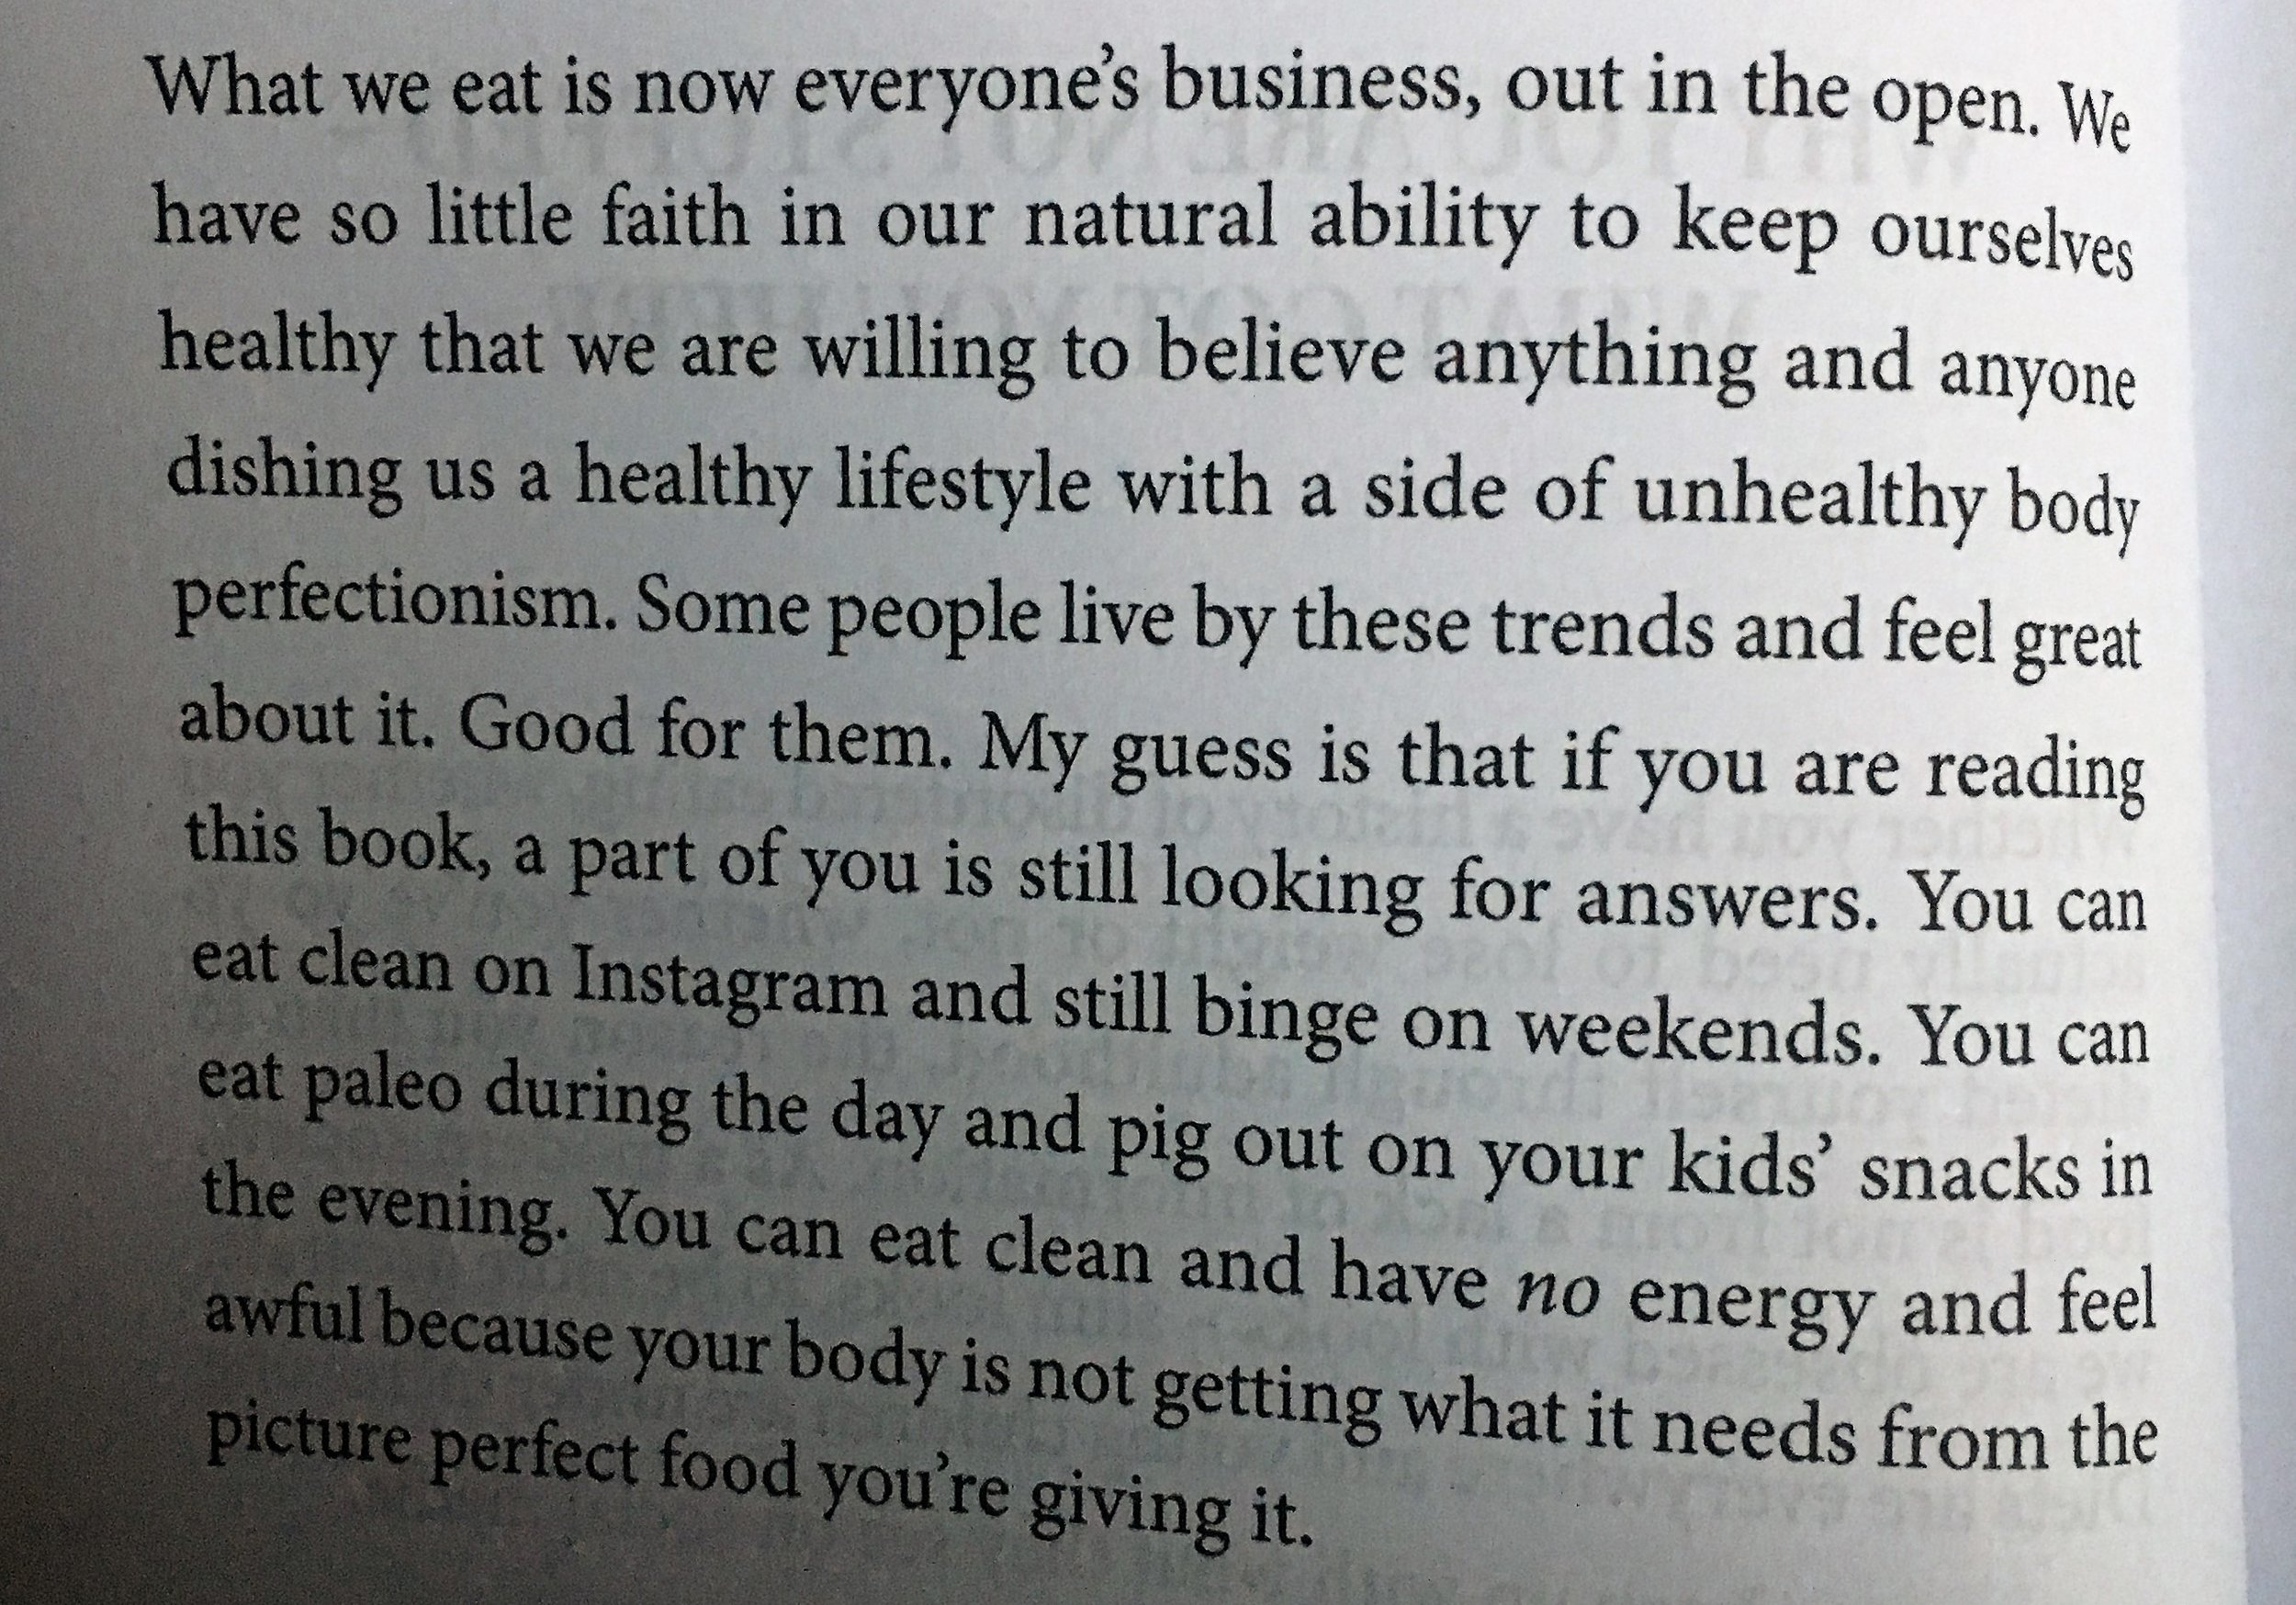 """""""You can eat clean on Instagram and still binge at the weekends""""   Food for thought right there!"""